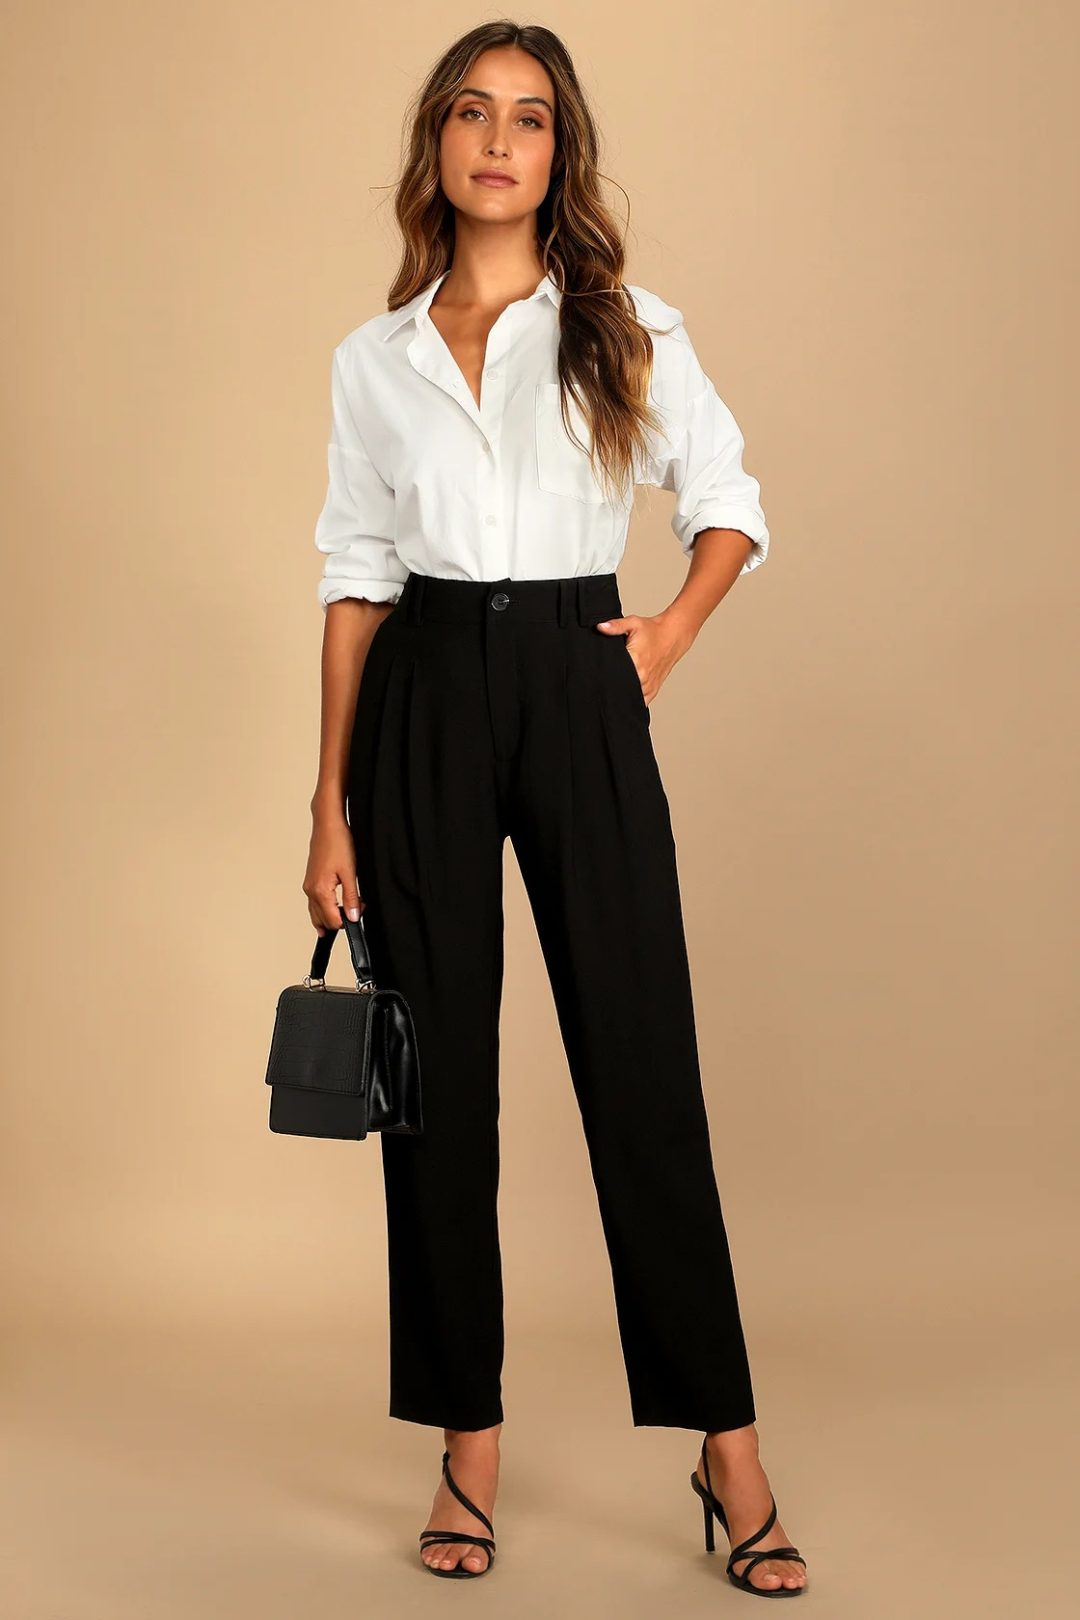 White button up blouse and black straight leg pants for court